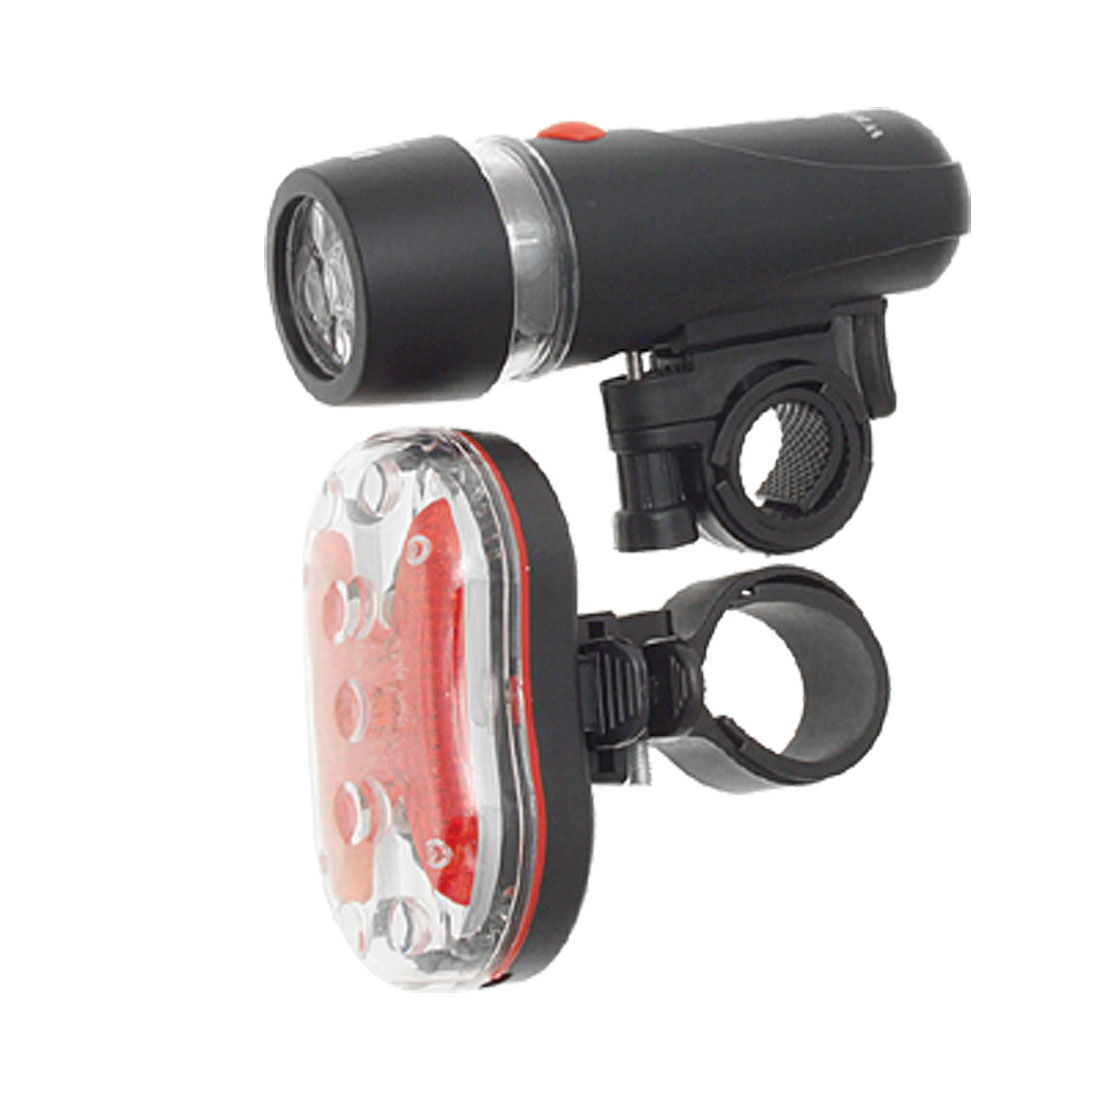 7 Modes Red LED Flash Light + 3 Modes White LED Flash Light for Bicycle Bike